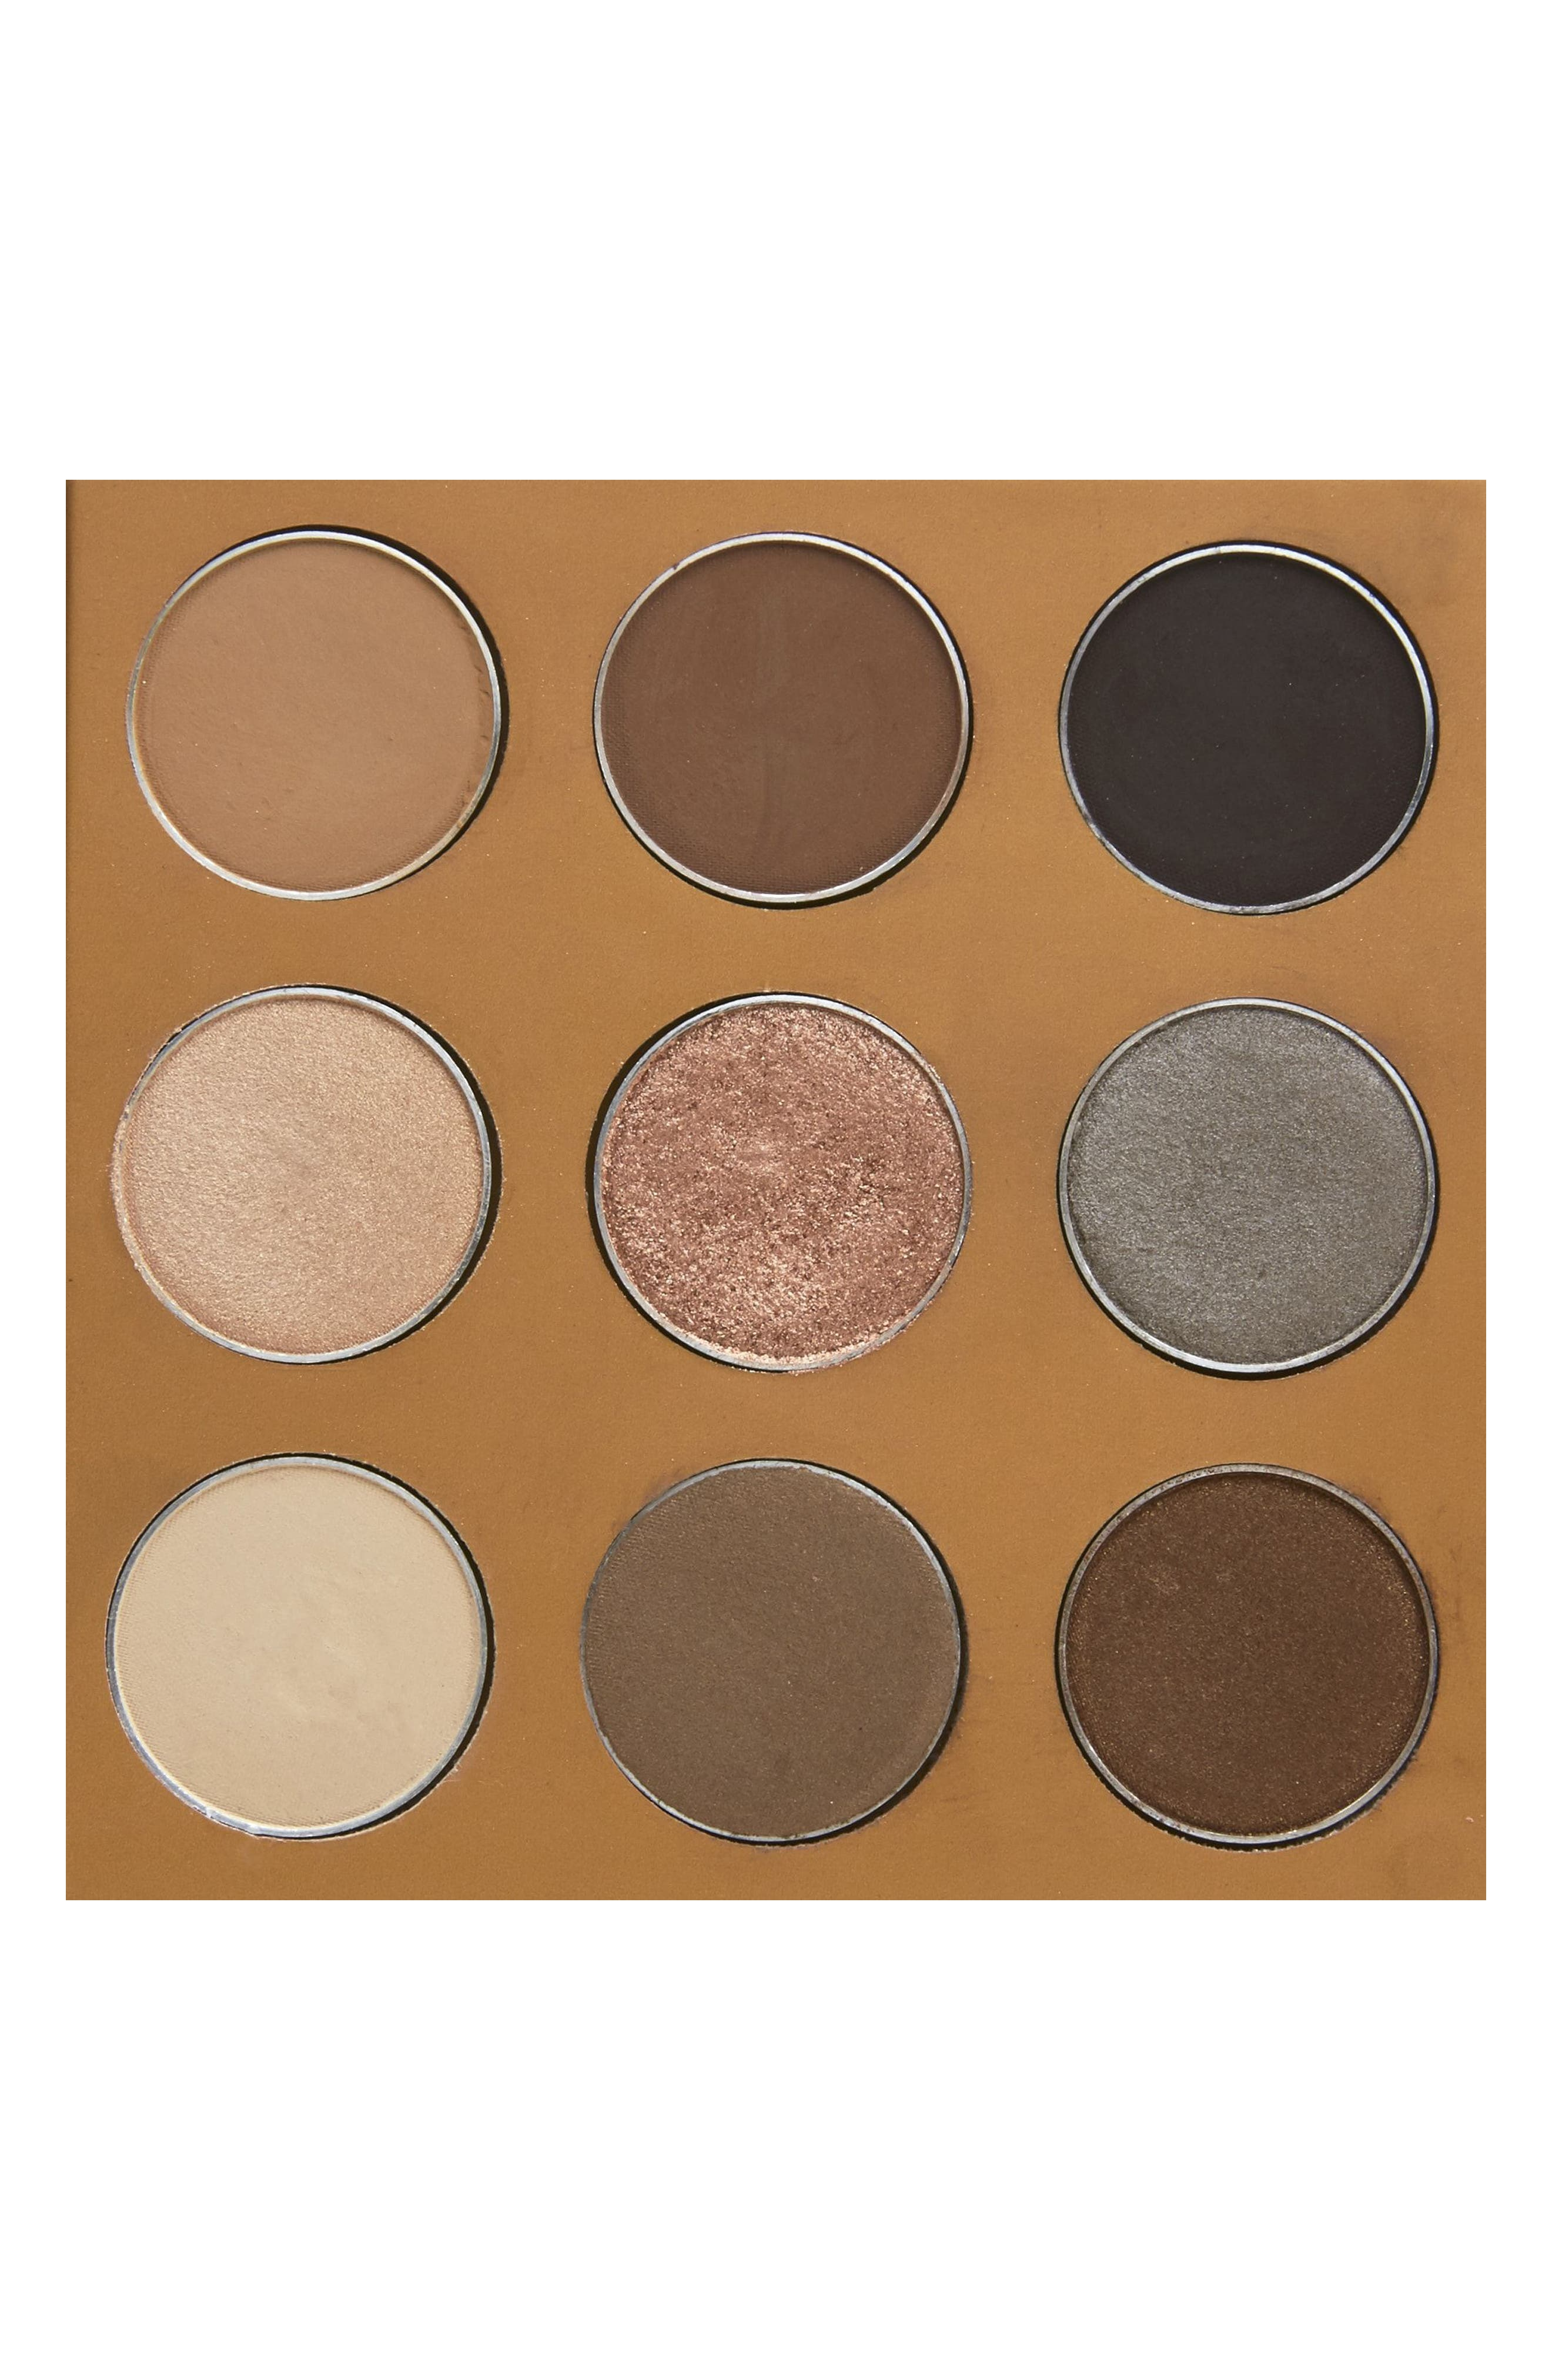 Coffee Eyeshadow Palette,                             Alternate thumbnail 2, color,                             No Color